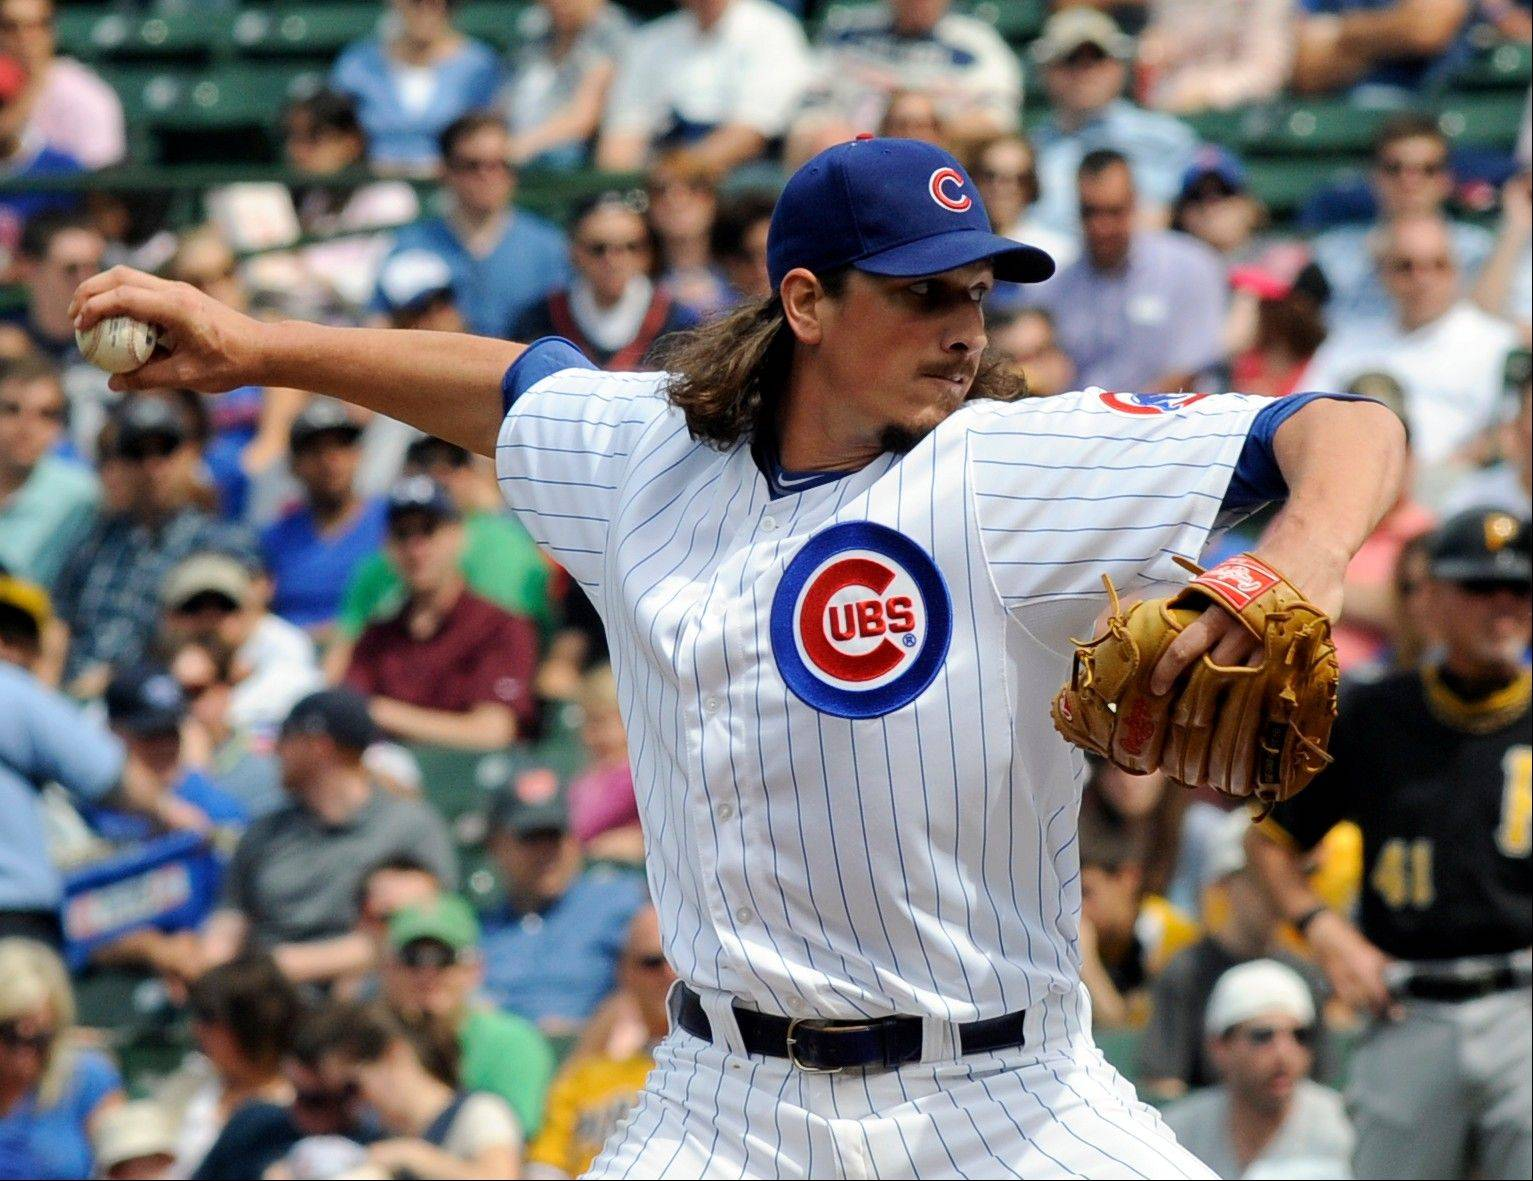 Chicago Cubs pitcher Jeff Samardzija delivers to a Pittsburgh Pirates batter during a baseball game on Saturday June 8, 2013, in Chicago, Ill. (AP photo/Joe Raymond)